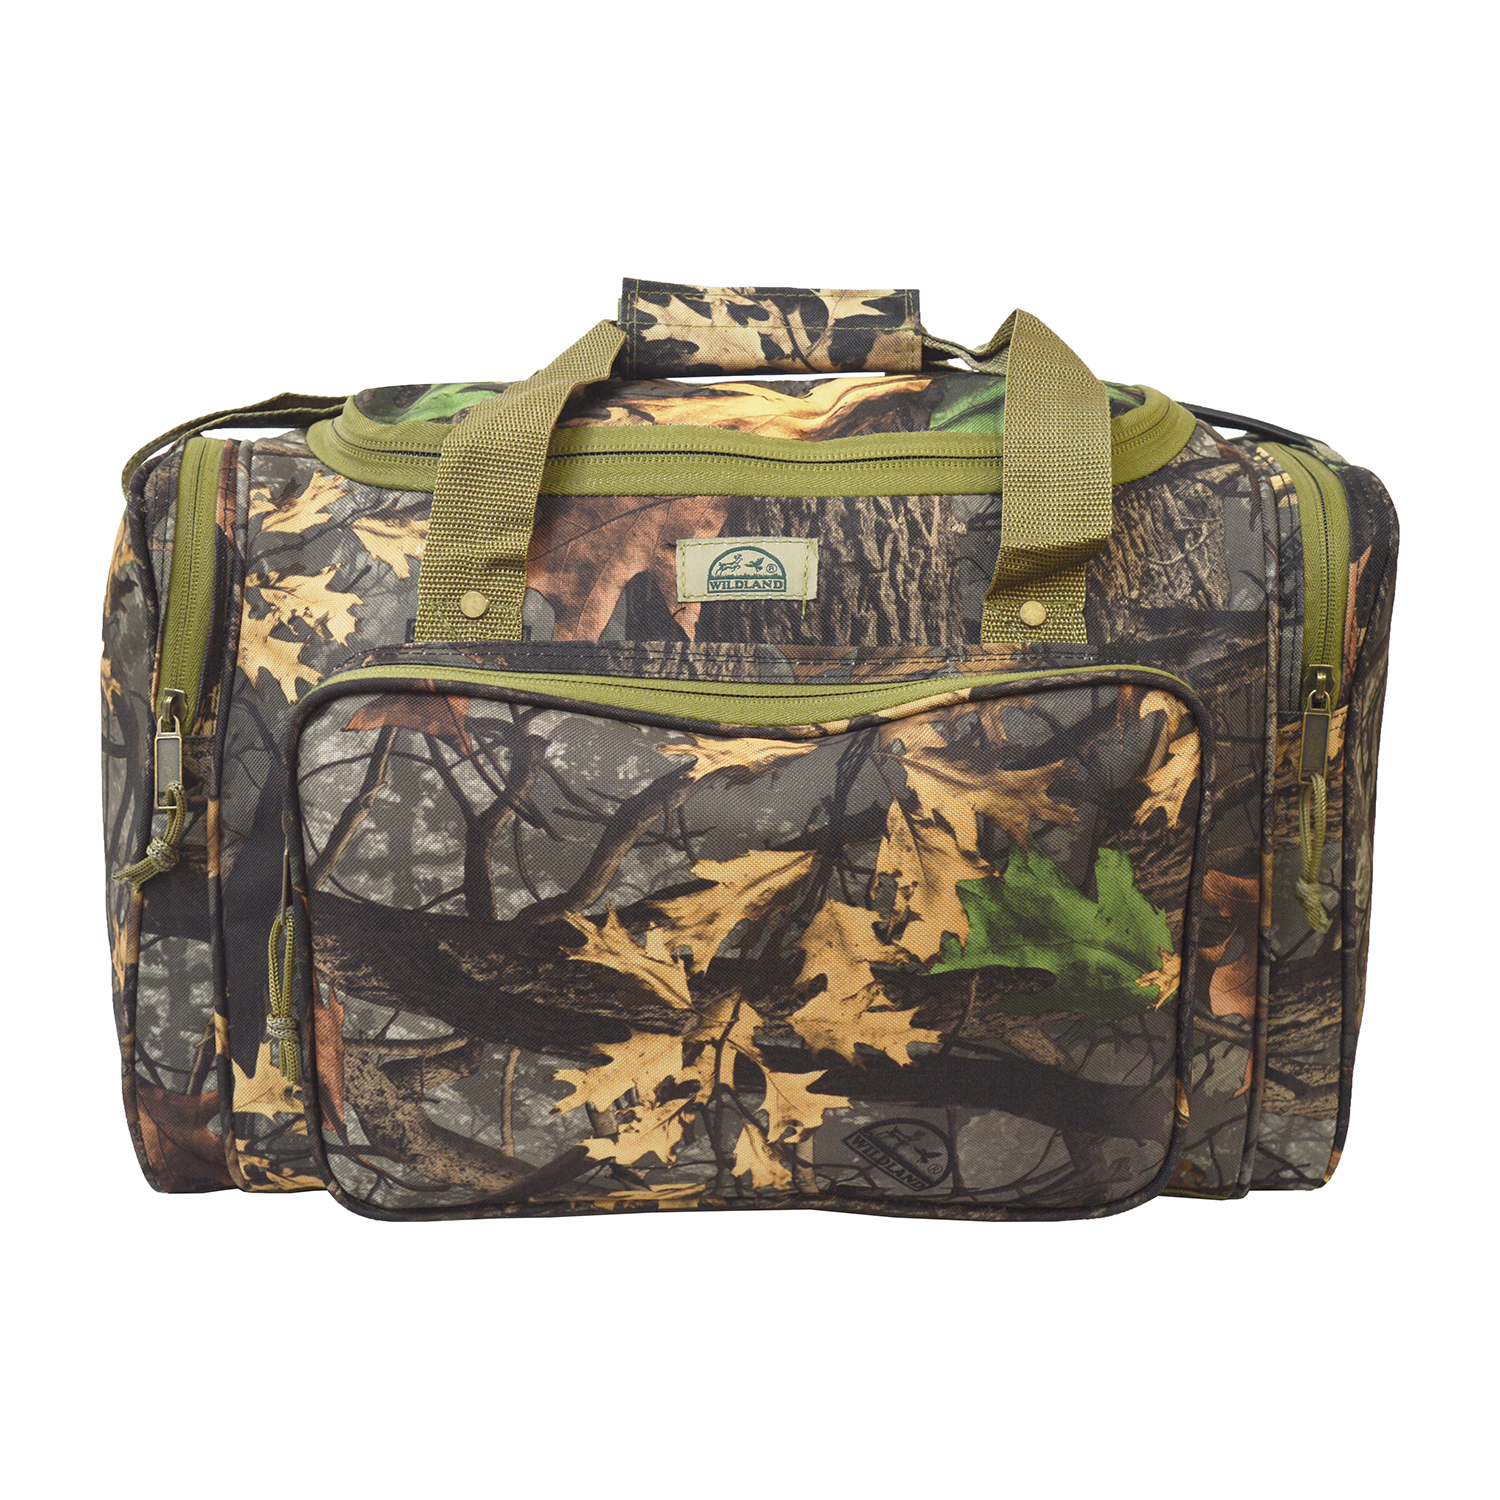 Every Day Carry Wildland Camo Tactical Brief Case Messenger Bag w/ 2 Gun Carrier